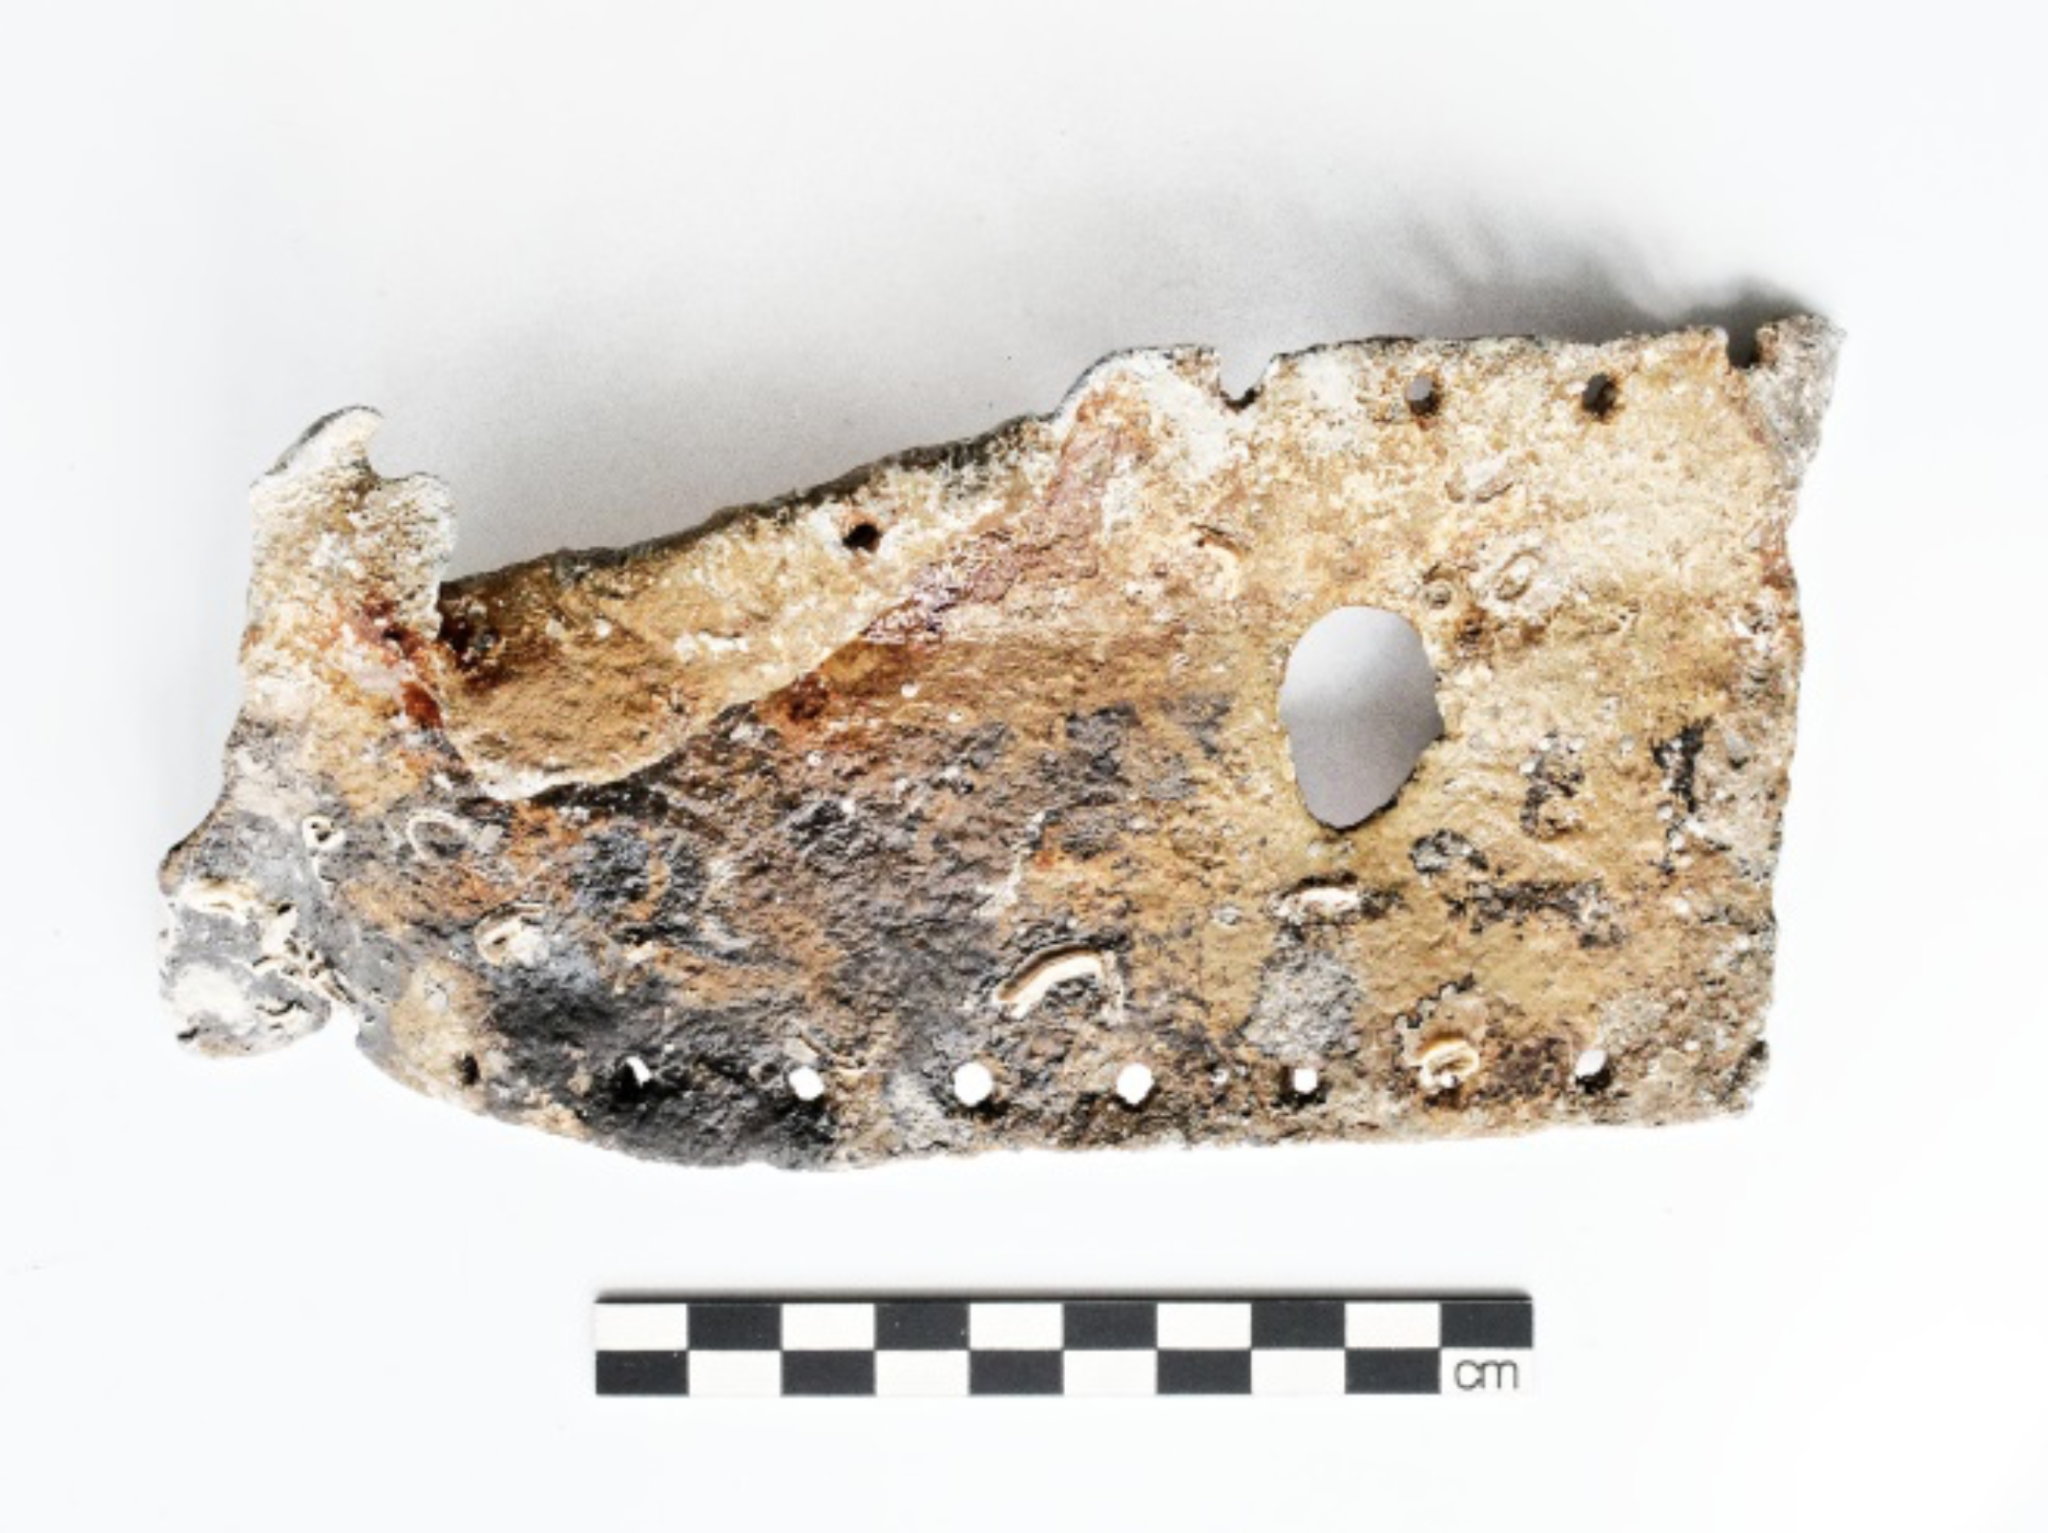 Photo of a fragment of sheet lead (F28) with nail holes around its edges suggesting that this is lead sheathing. The fragment is brown and grey in colour, with a larger hole towards the right hand side. A centimetre scale of 10cm indicates an approximate width of 17cm.